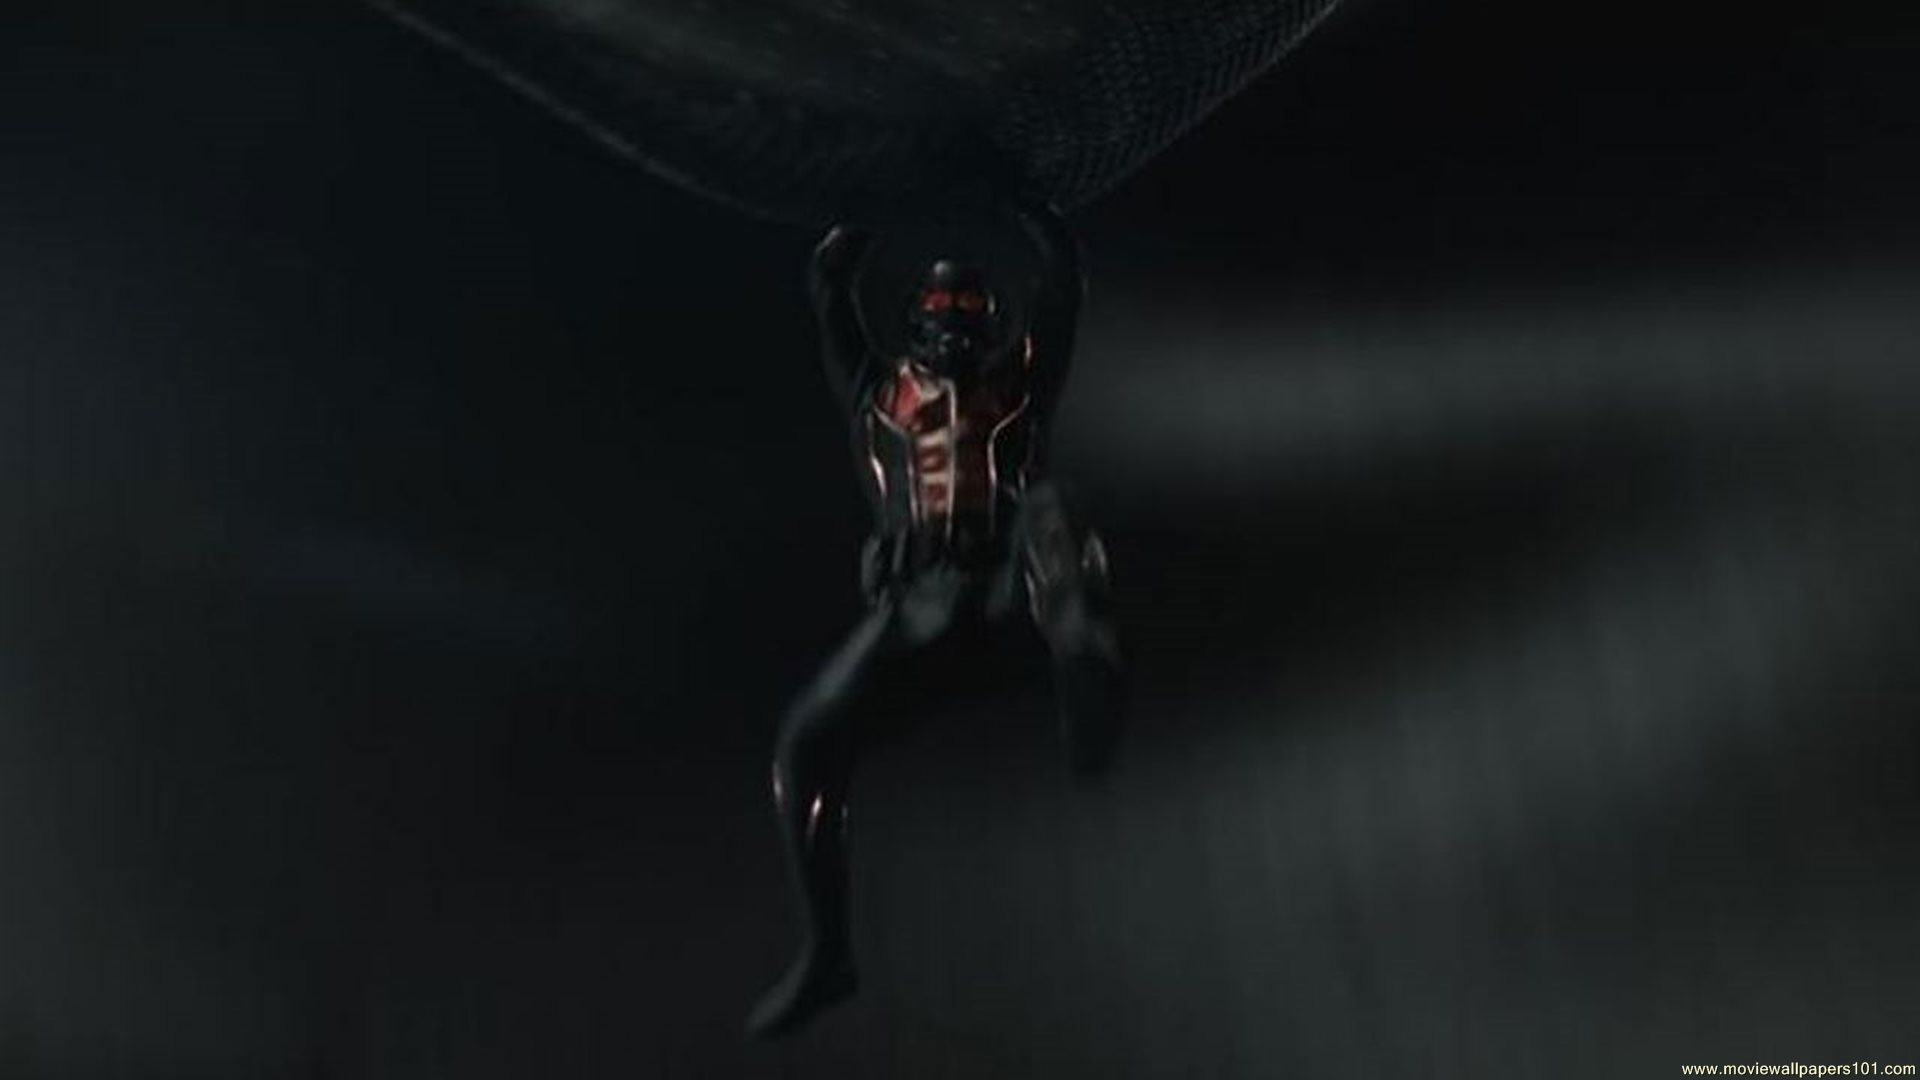 Download Ant Man 2015 Movie Trailer HD Wallpaper Search more high 1920x1080